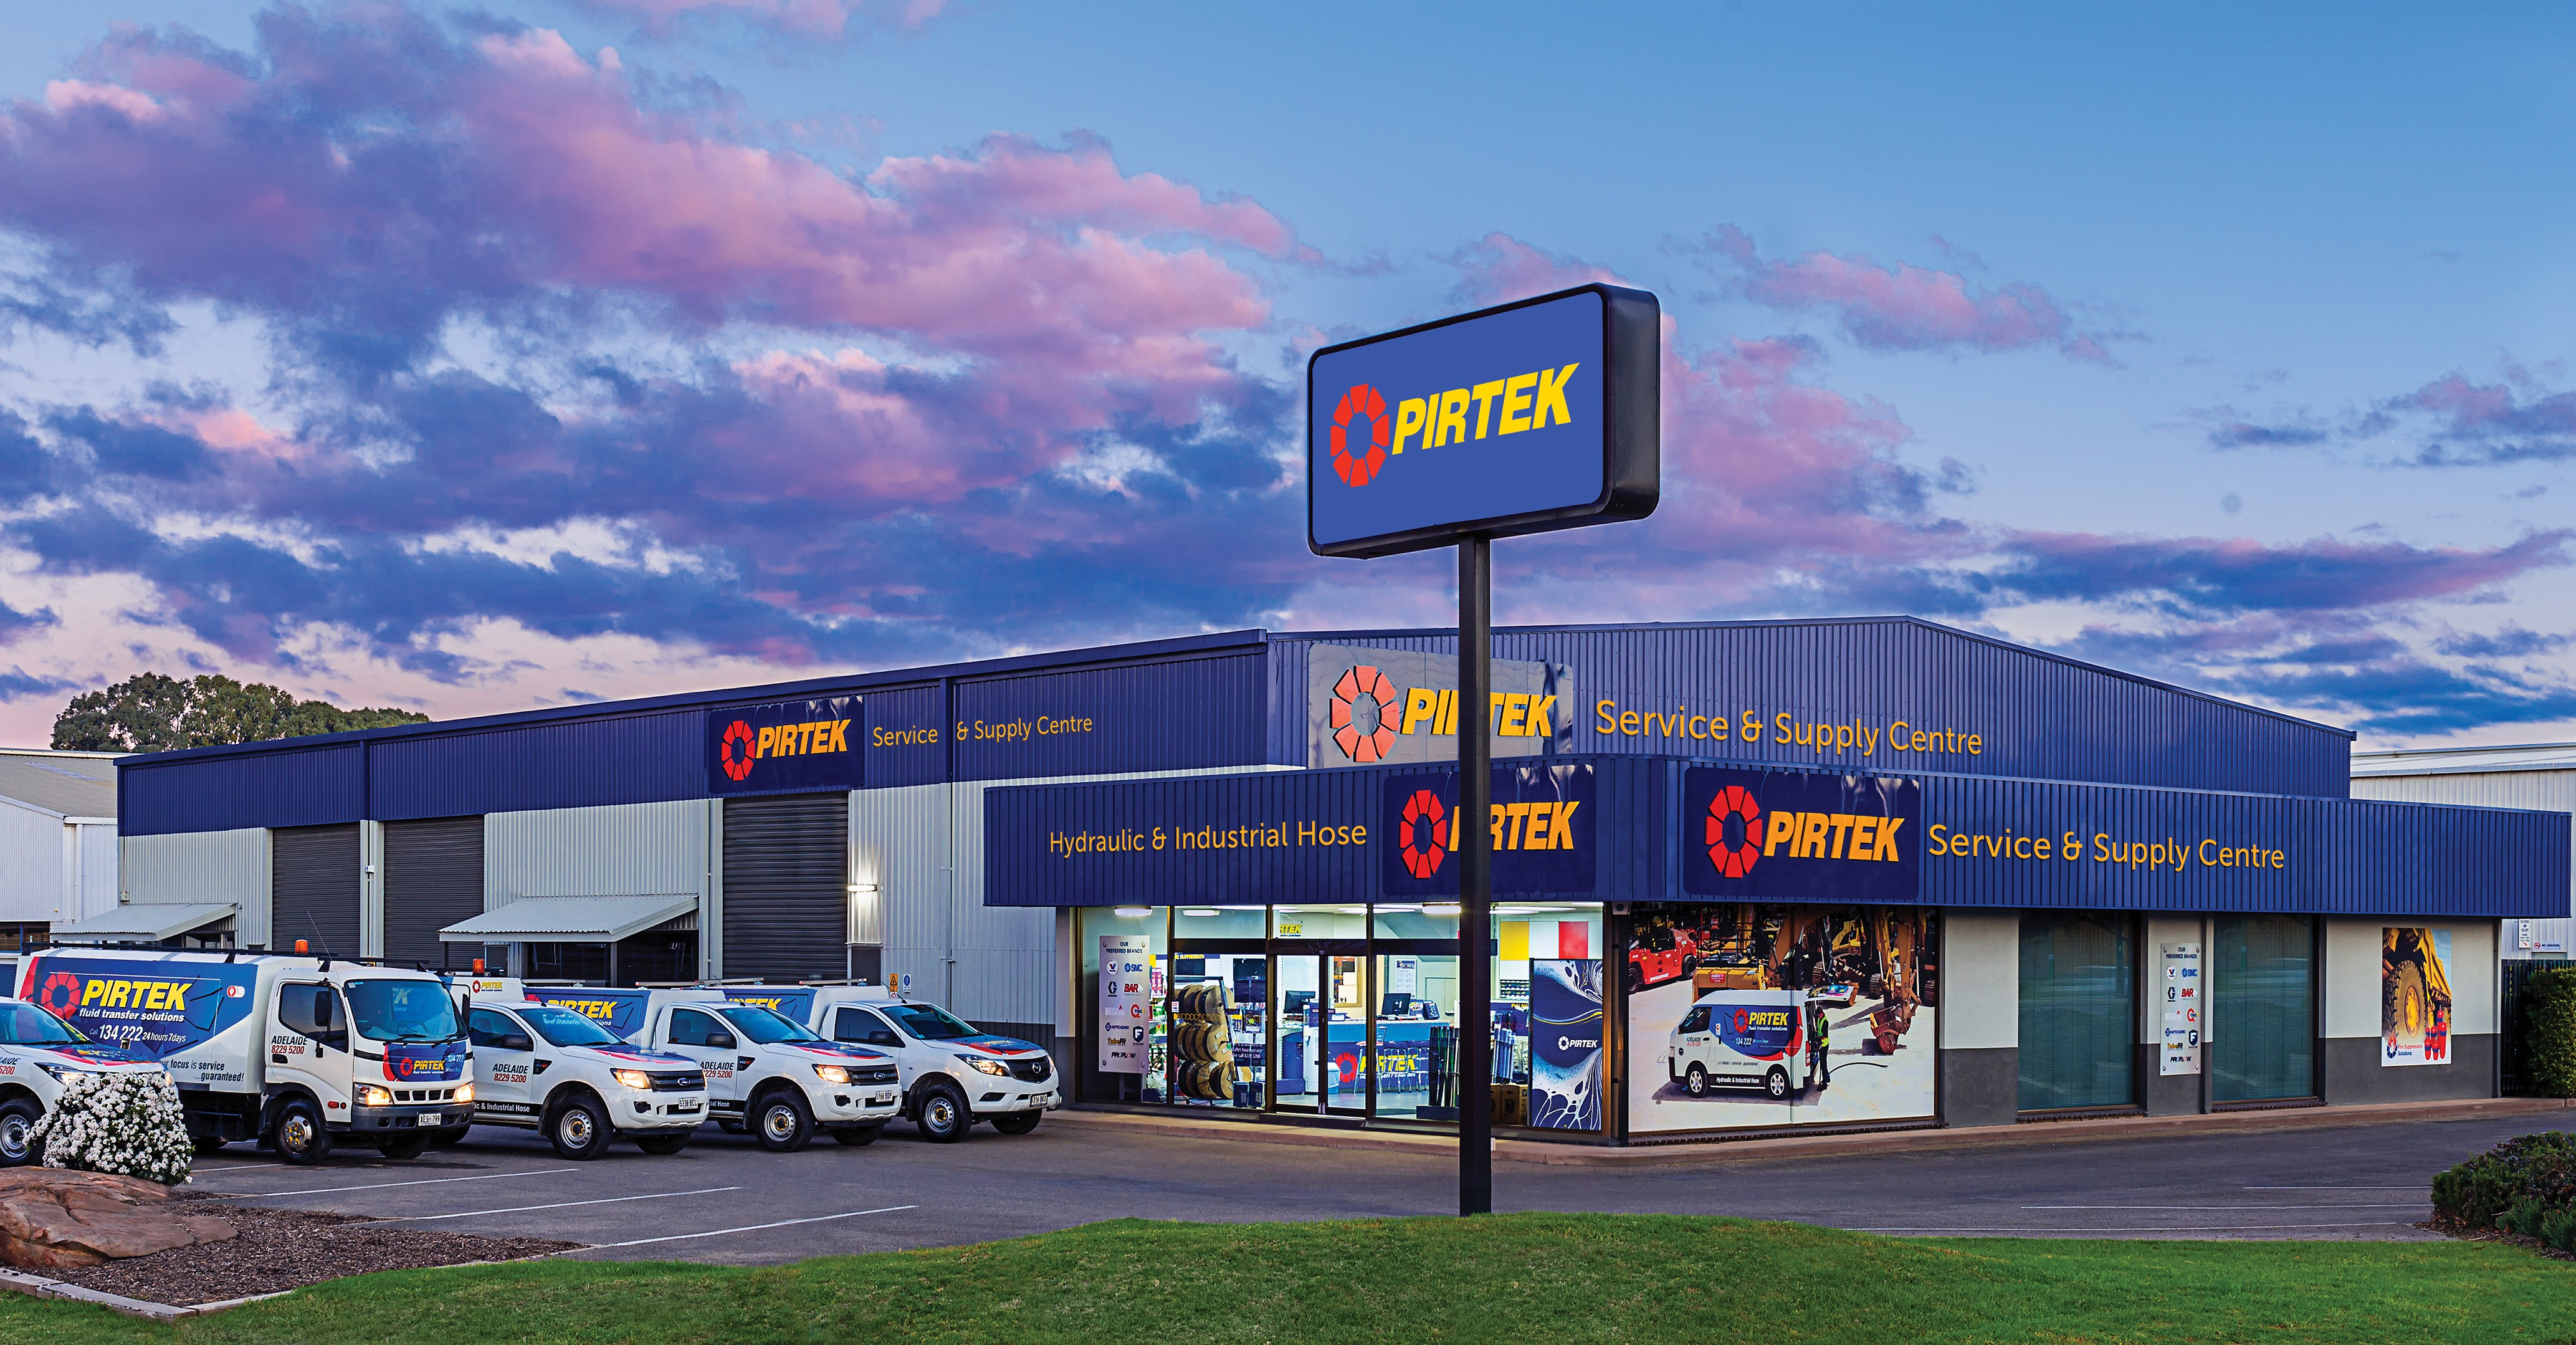 pirtek-franchise-available-work-for-yourself-not-by-yourself-5